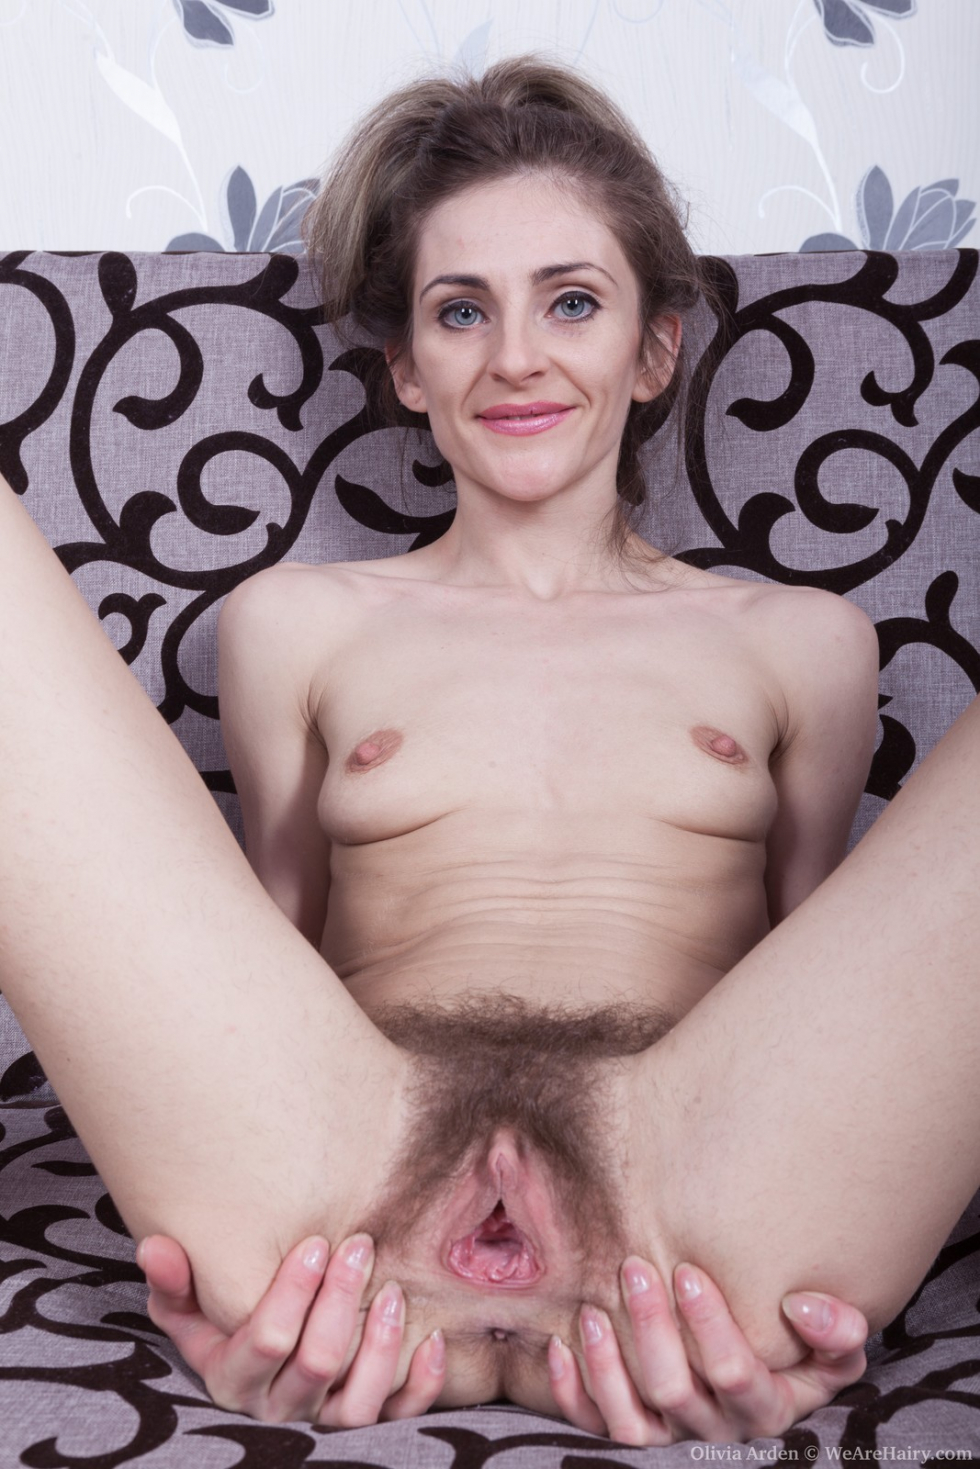 image Hairy milf olivia arden from allover30